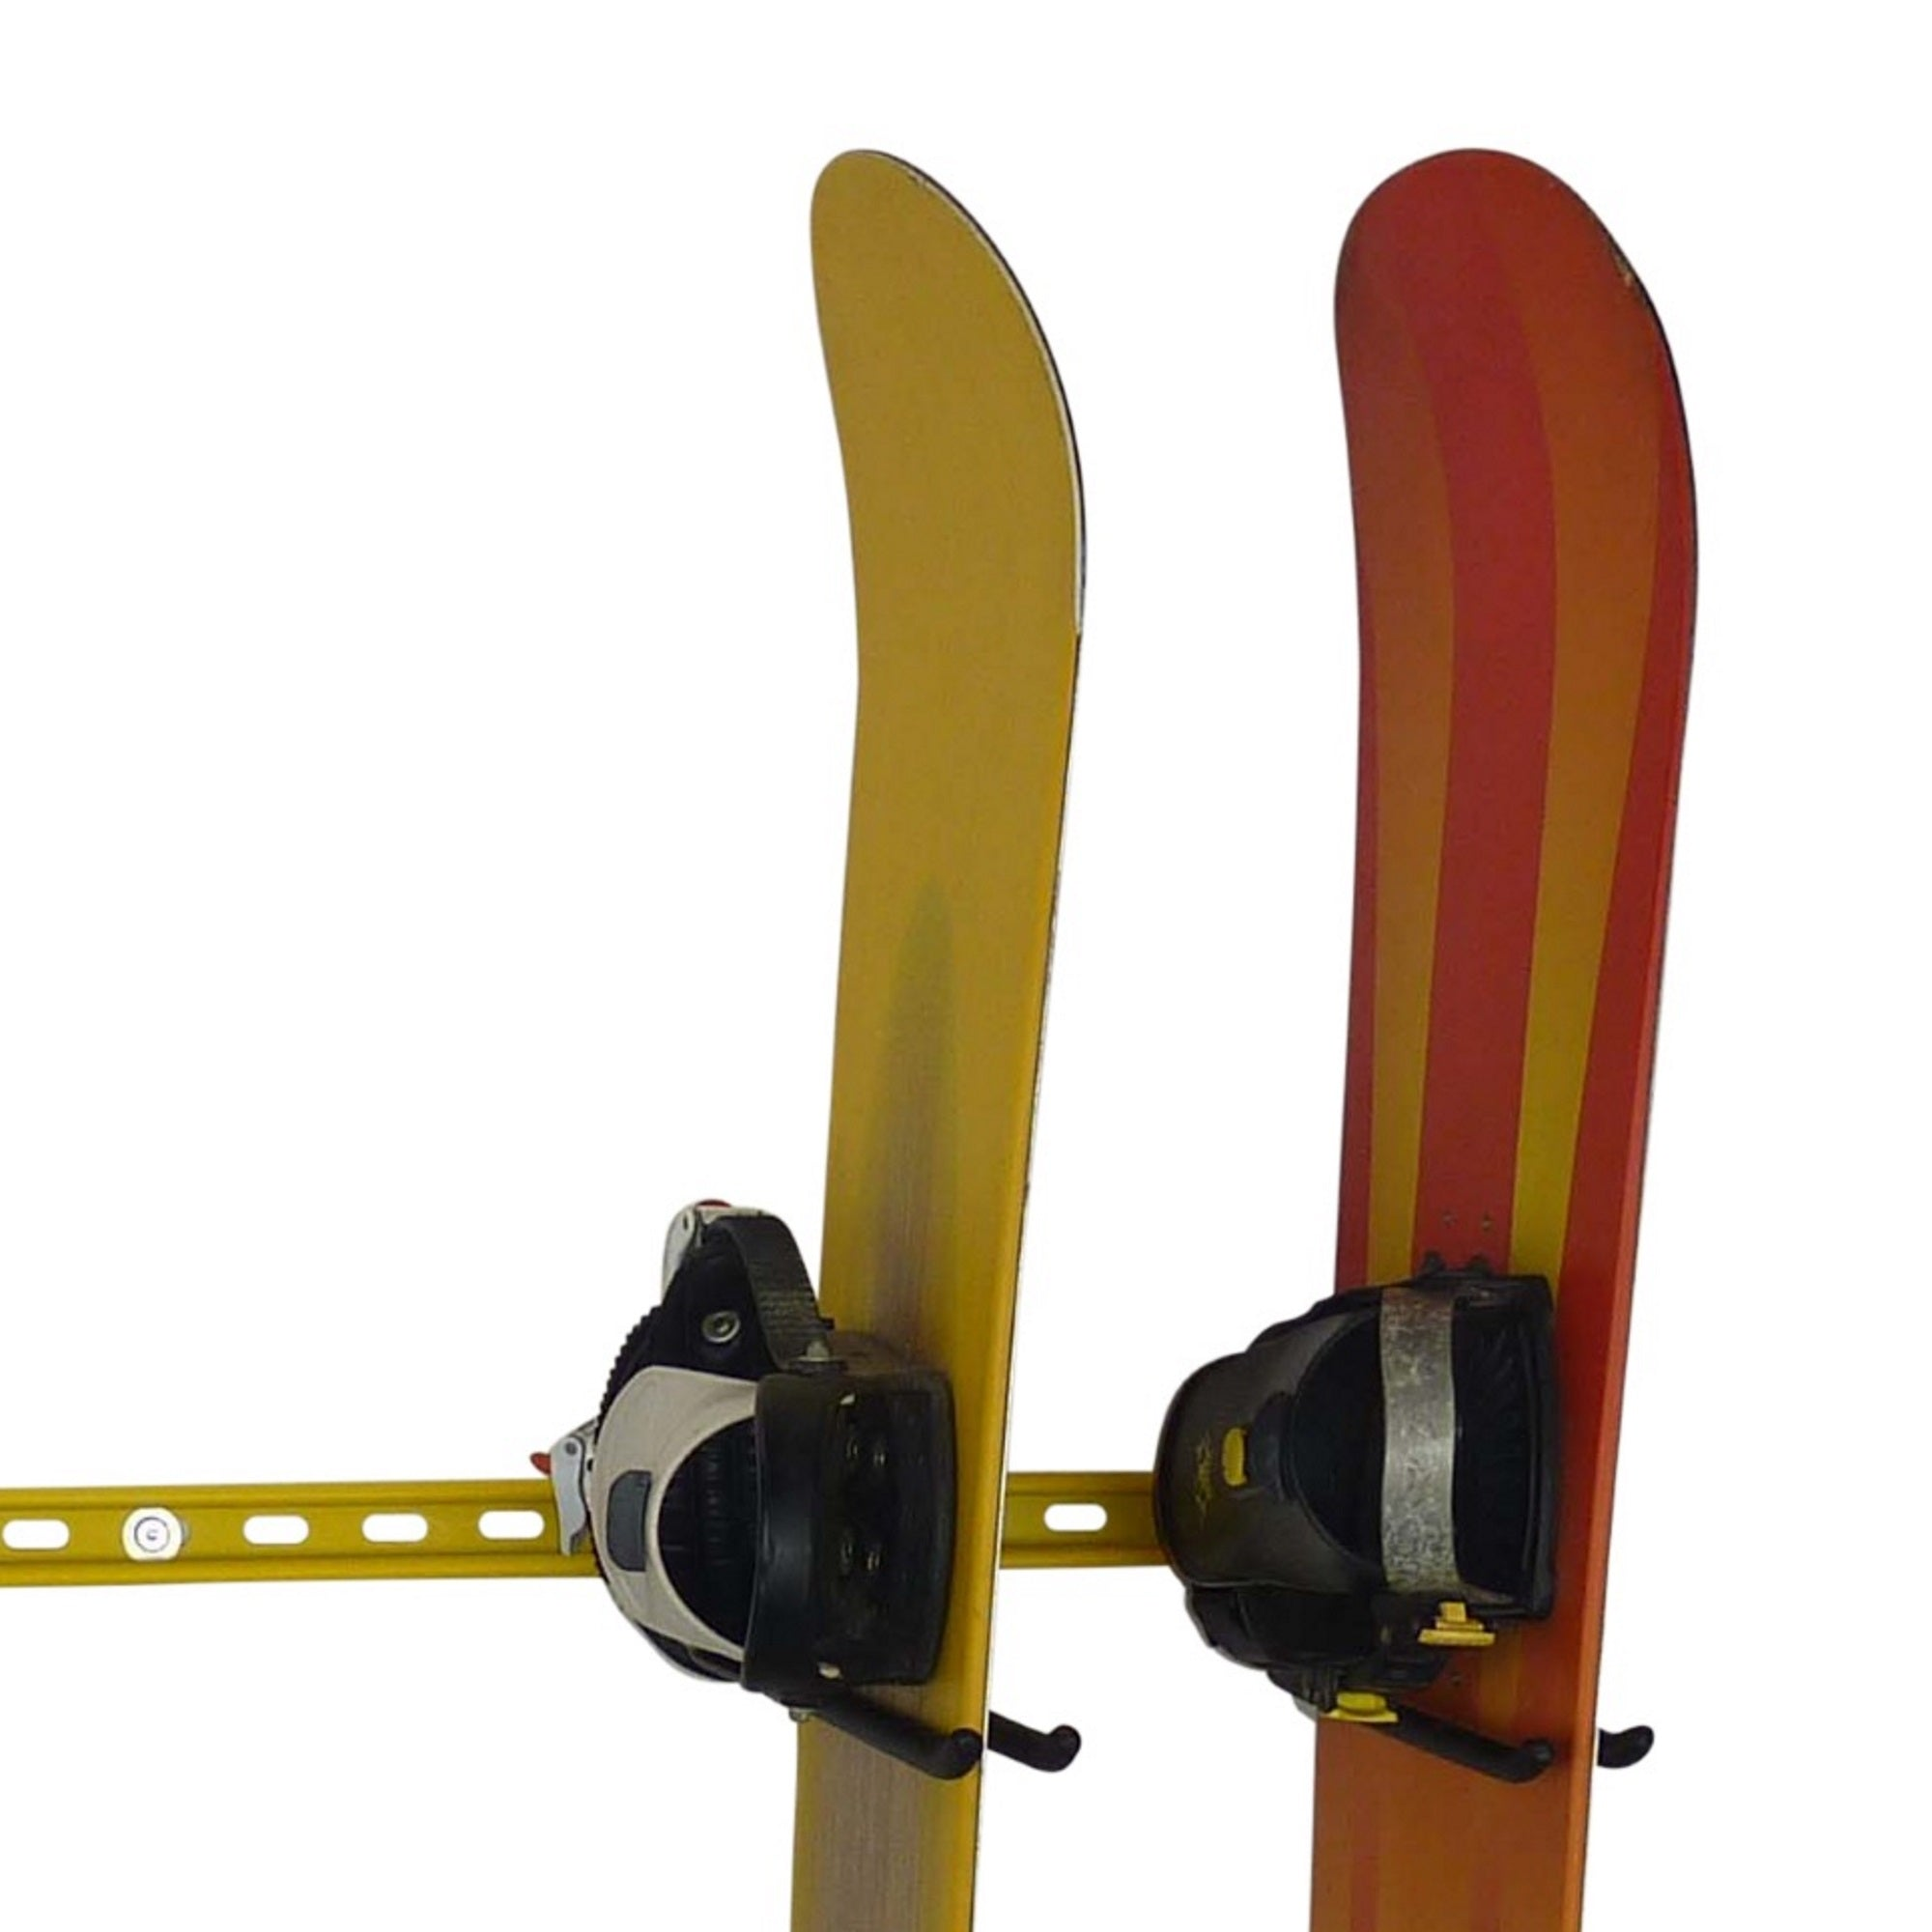 Snowboard storage hooks for 1 snowboard